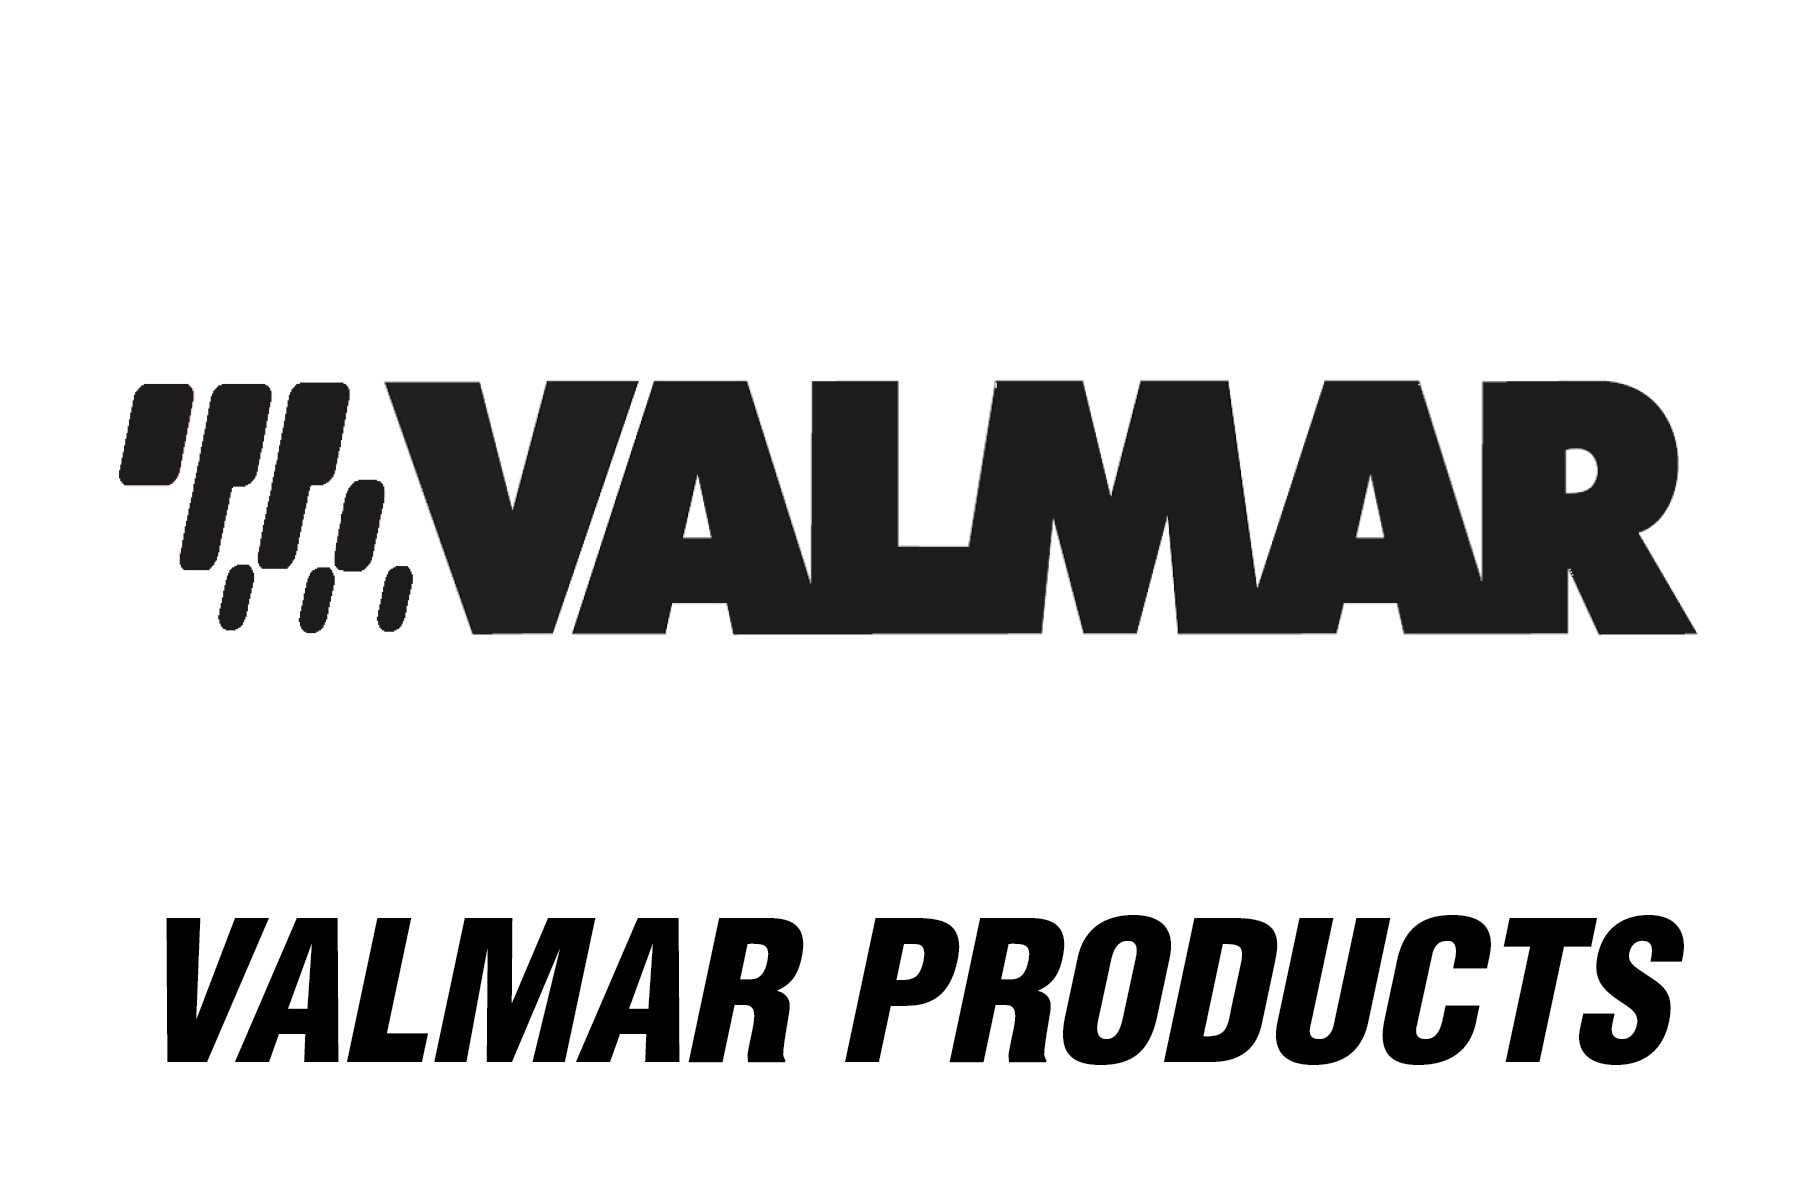 VALMAR PRODUCTS.jpg